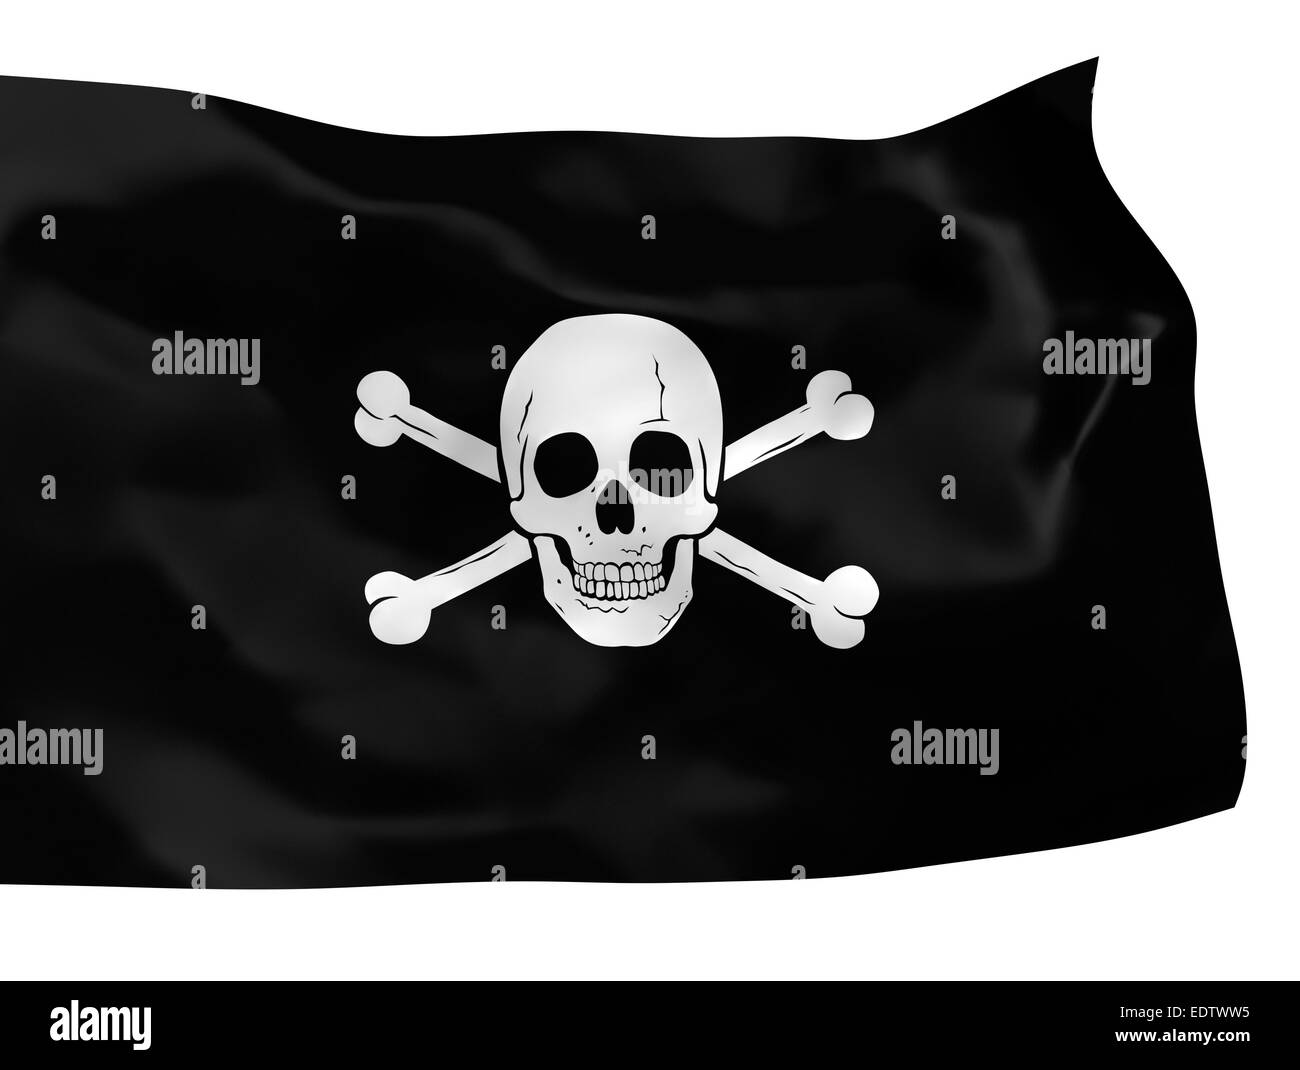 Waving pirate flag isolated over white background - Stock Image